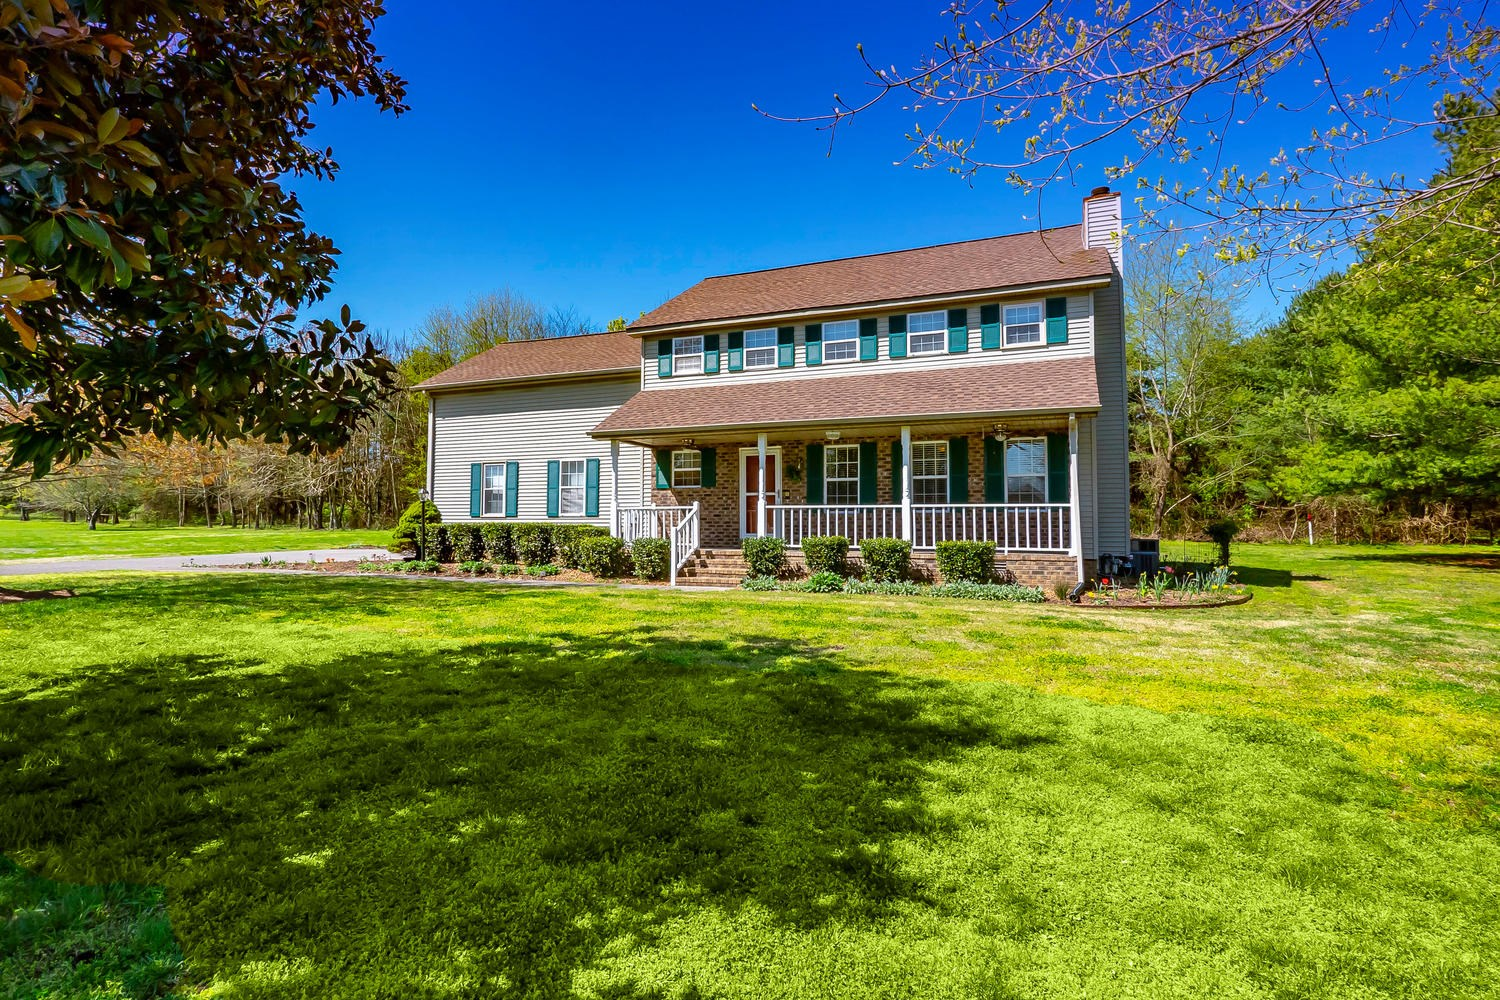 Home For Sale in Williamson County